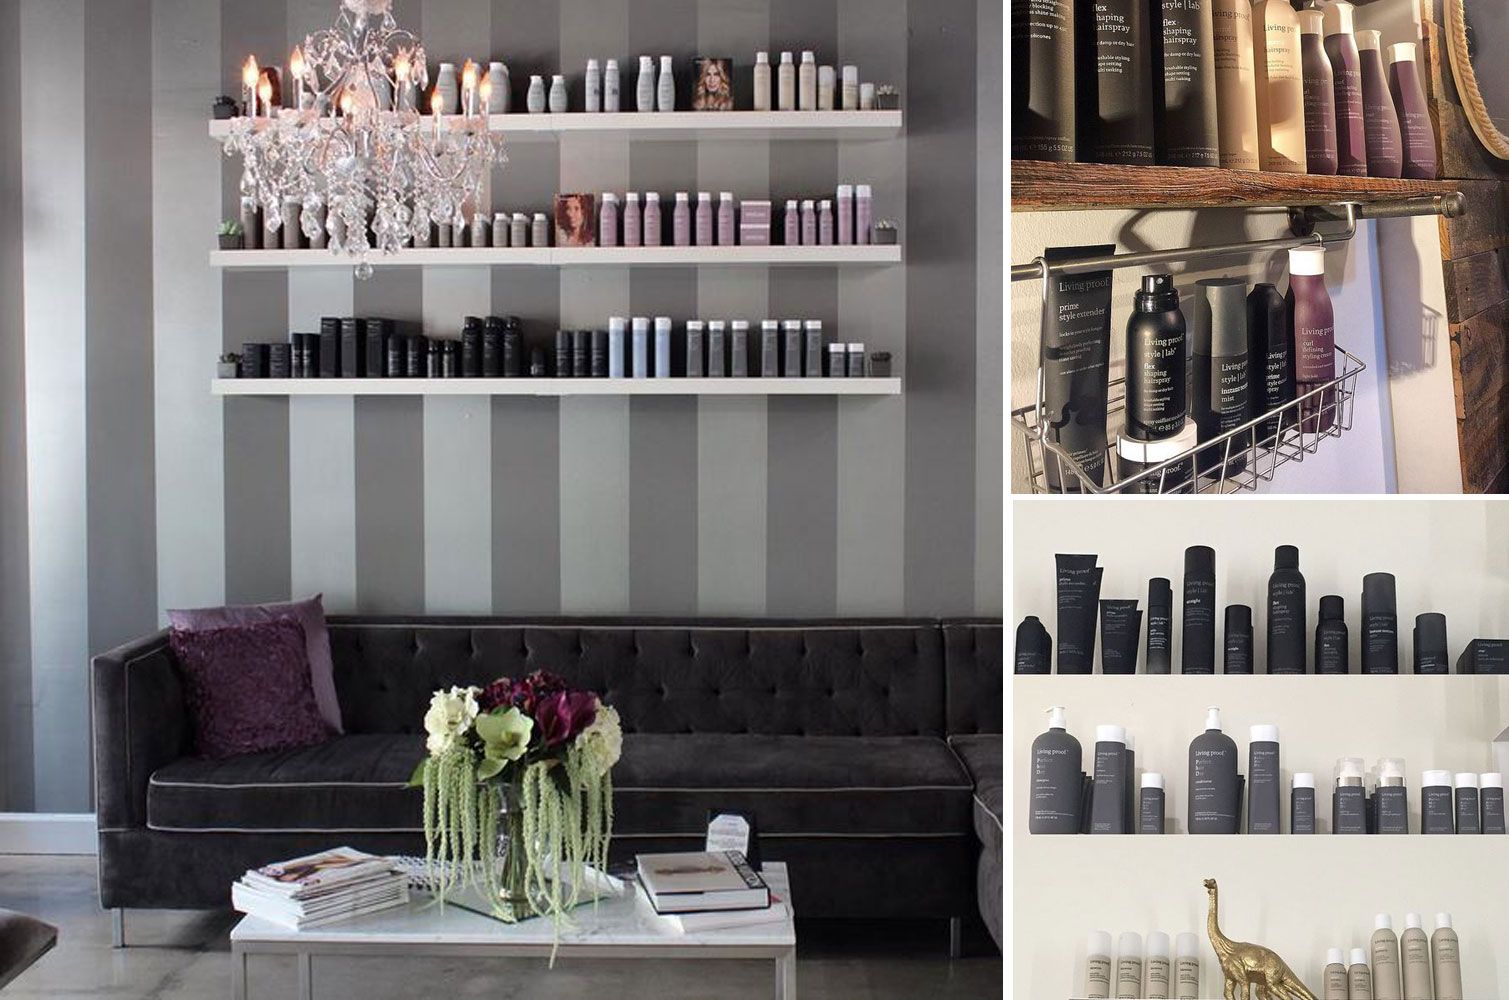 Up Your Retail Game With Inspiration From Living Proof's Instagram Salon Merchandising Contest